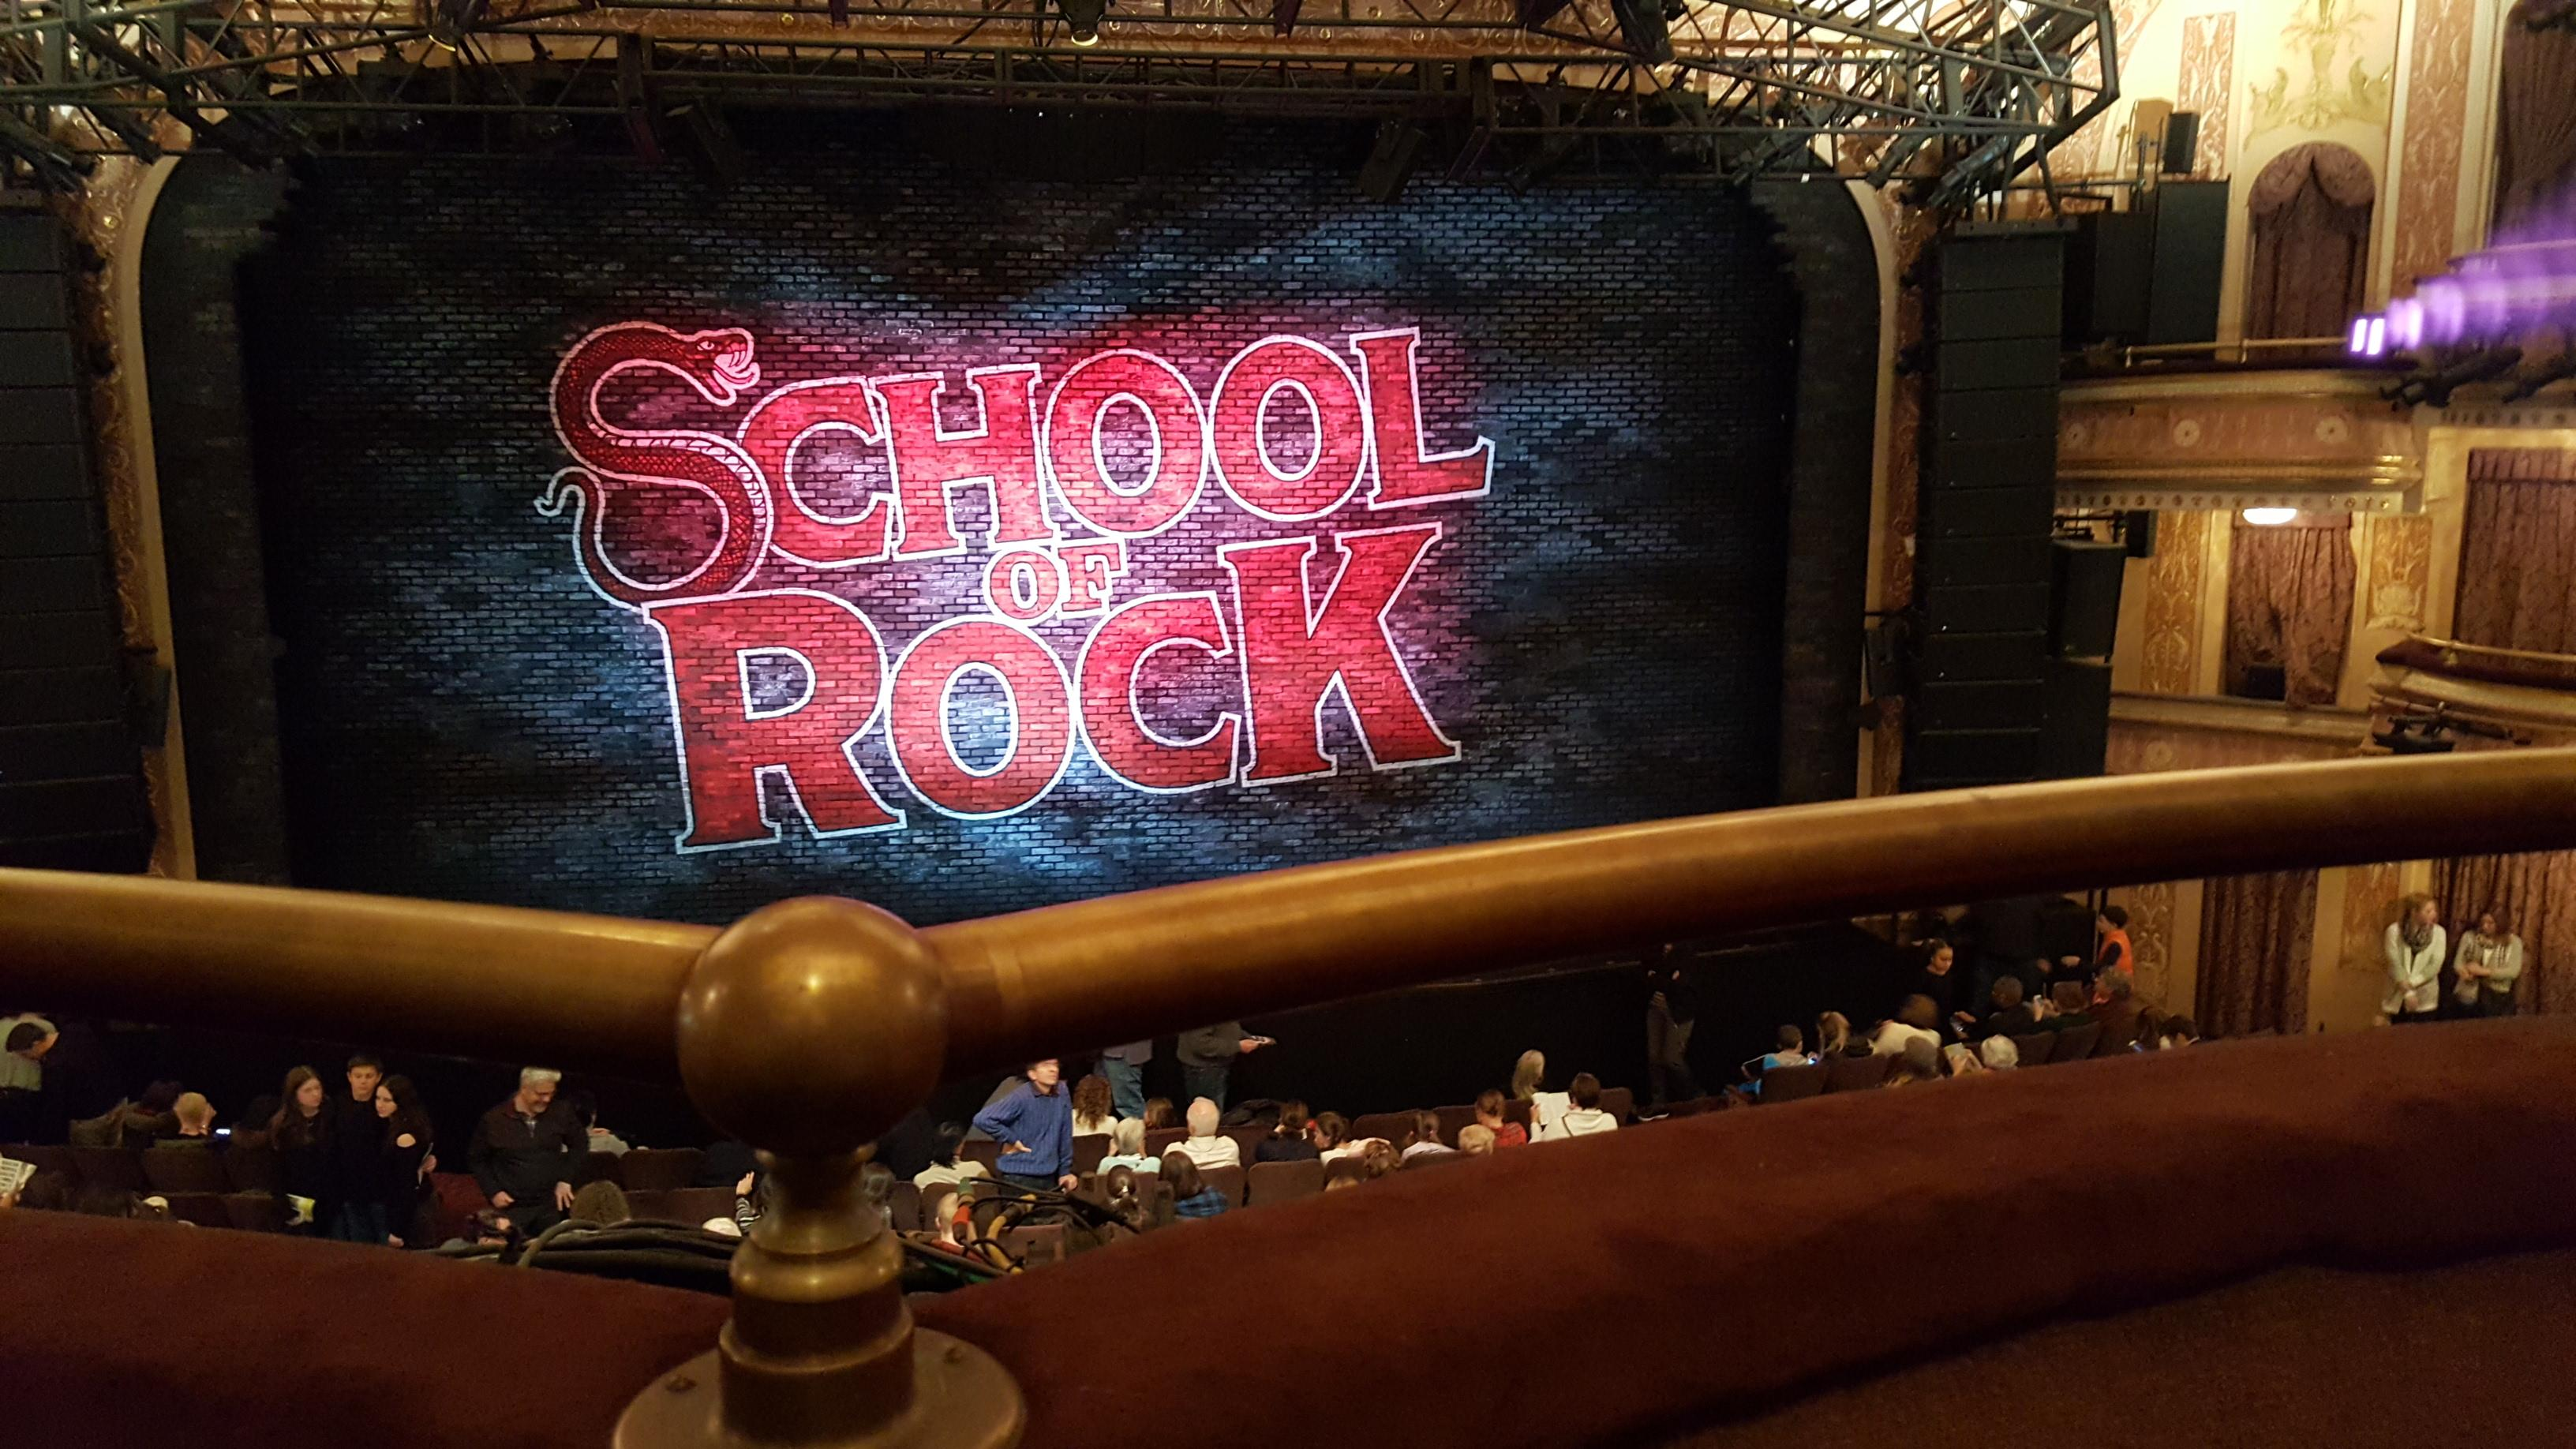 Winter Garden Theatre Section Mezzanine Row A Seat 106 and 10